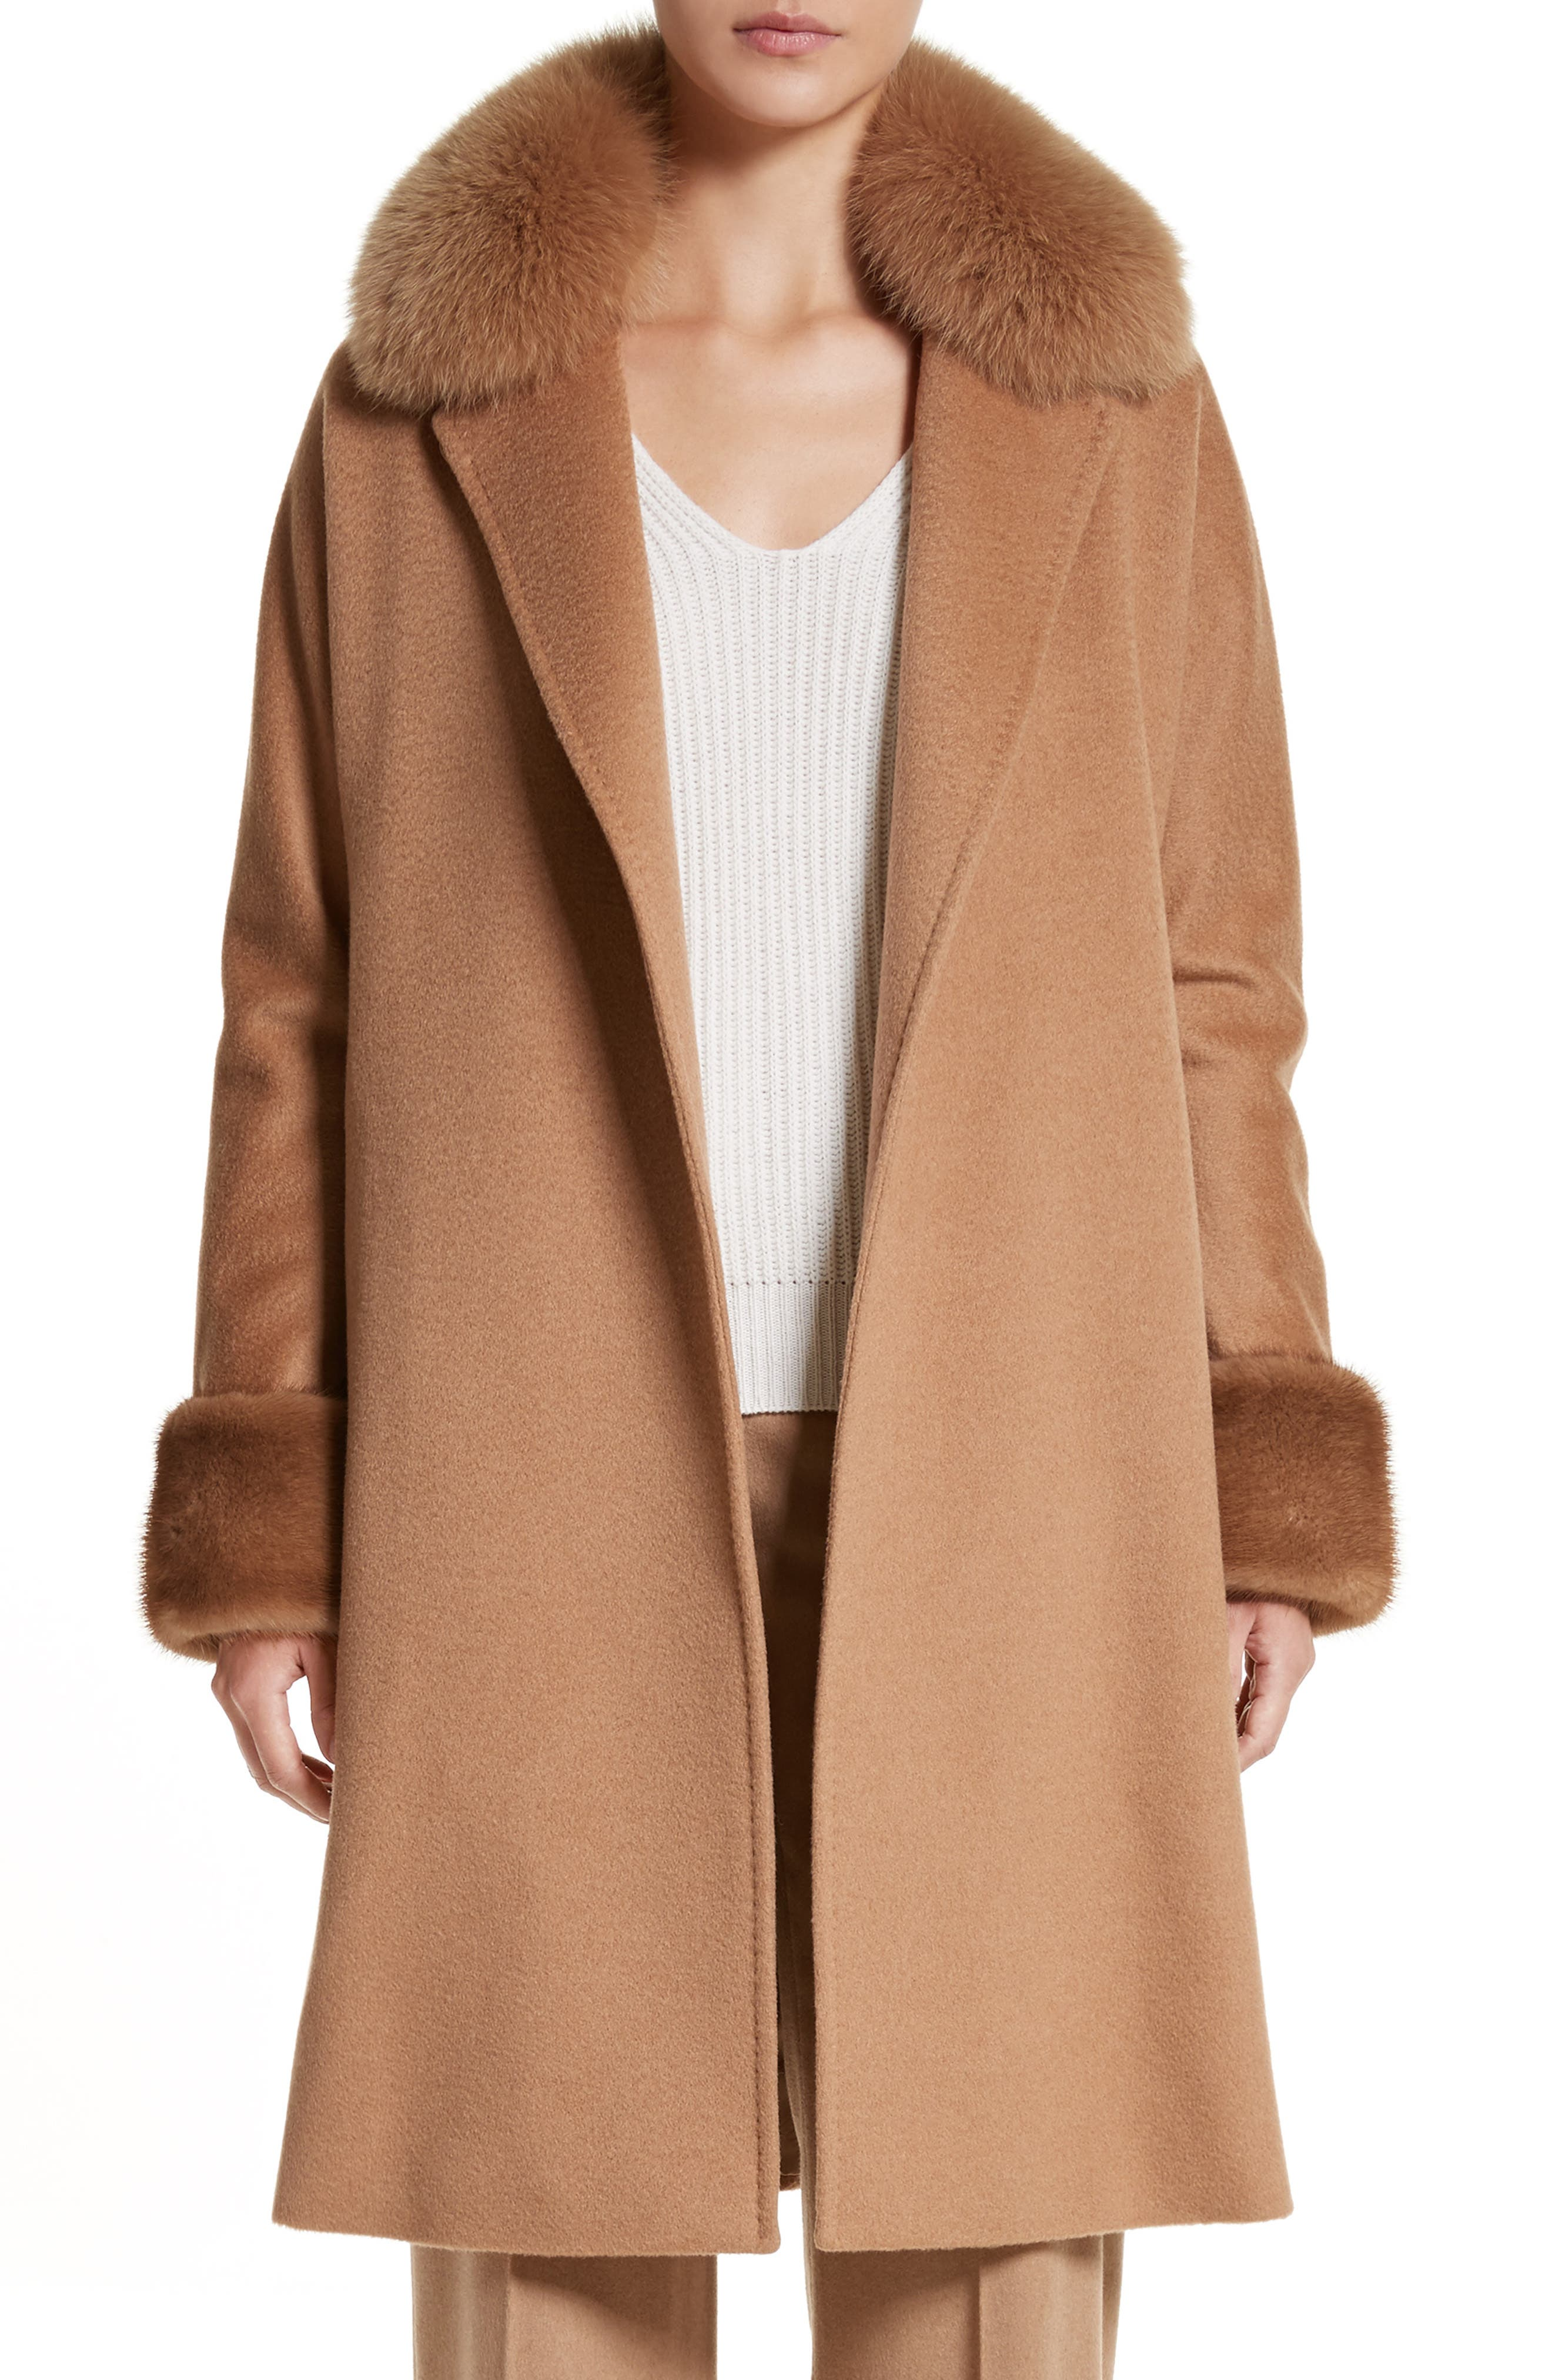 Main Image - Max Mara Camel Hair Coat with Genuine Fox Fur & Genuine Mink Fur Trim